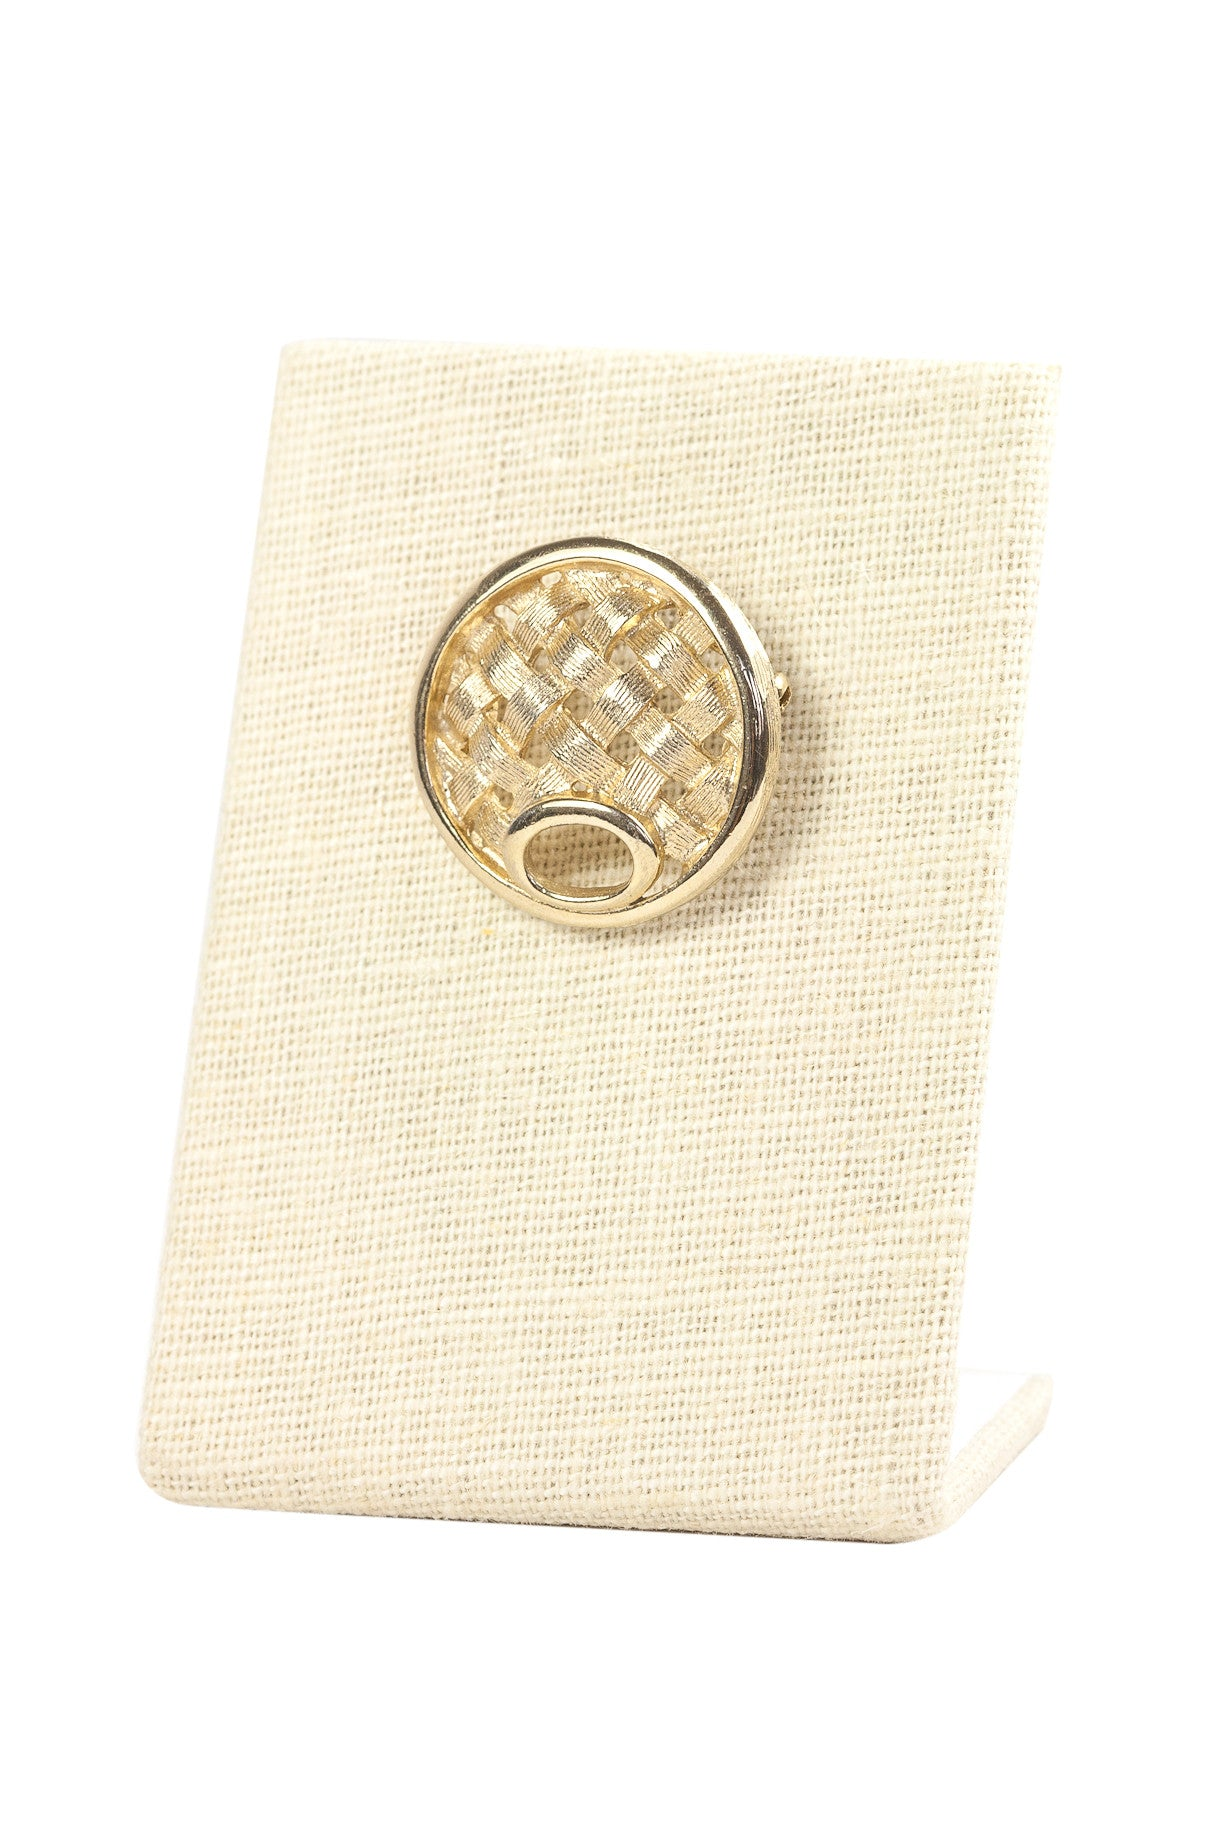 60's__Sarah Coventry__Mini Basketweave Brooch